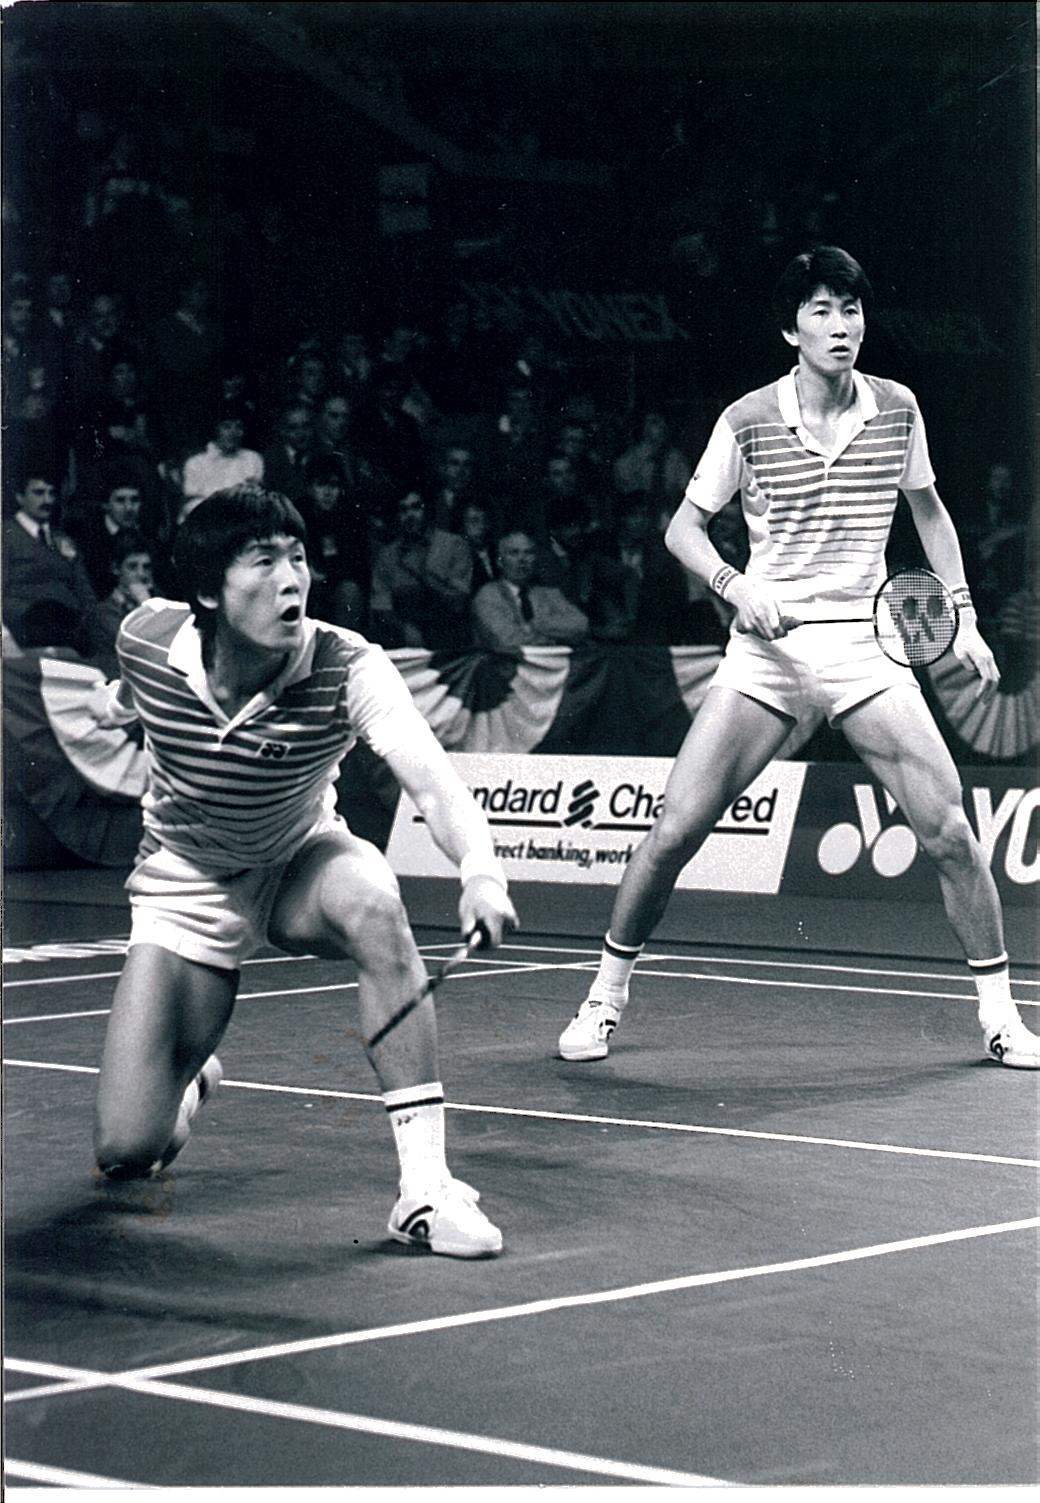 Park + kim in action at 1985 all england